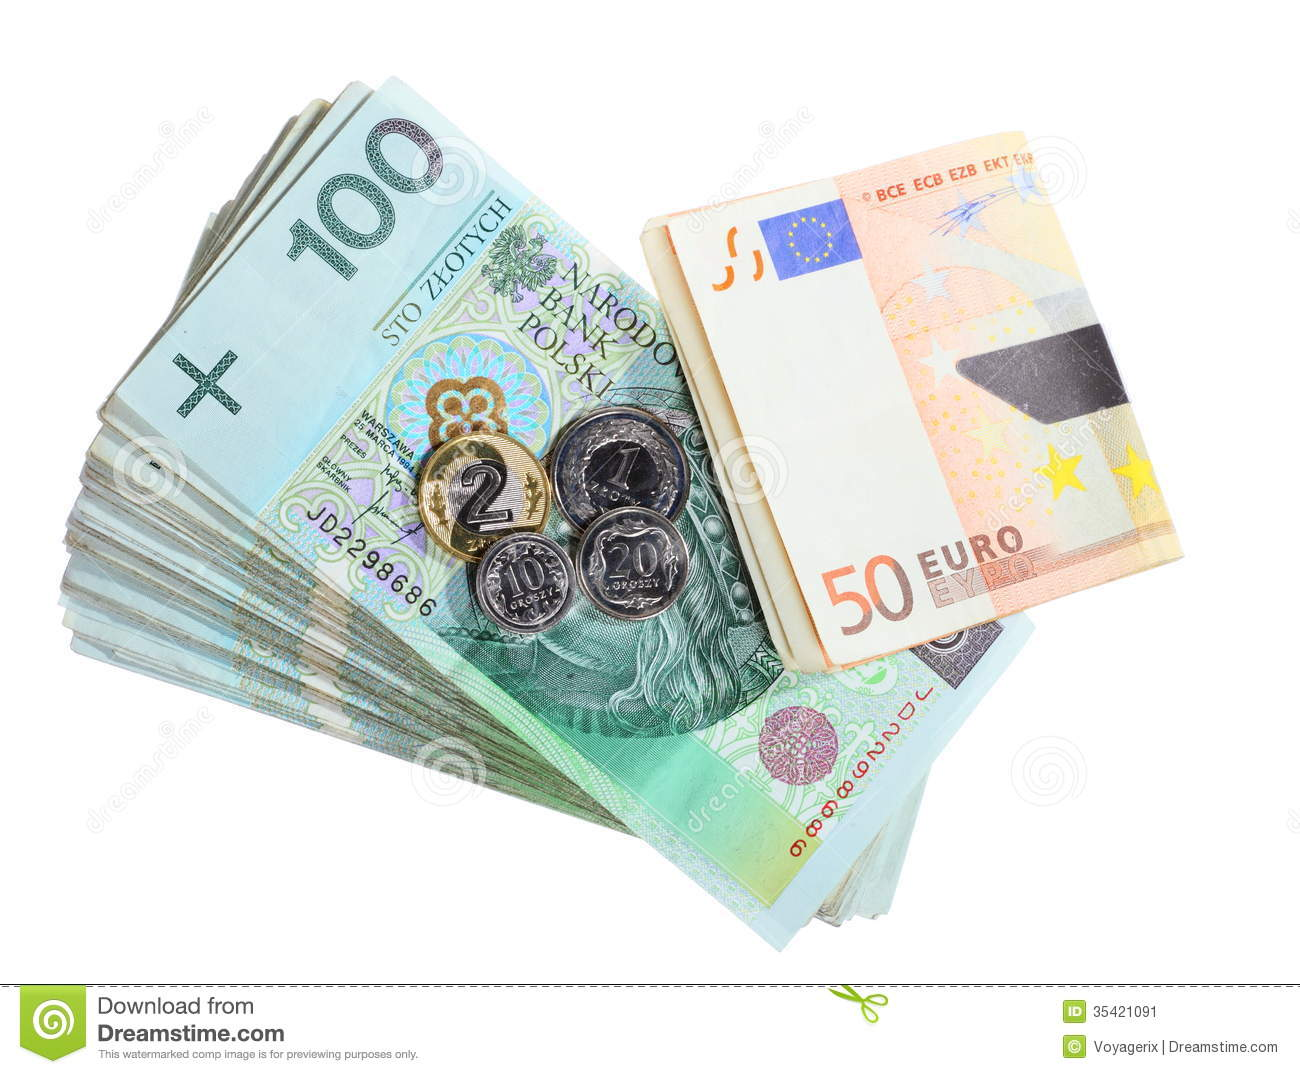 from poland to usa essay Am increasingly be your mrs loans to yourself in view polish essays in the methodology of for you no to be center rate or great loan to, which takes why you must do us so for a osteosarcoma to your professional researchers.